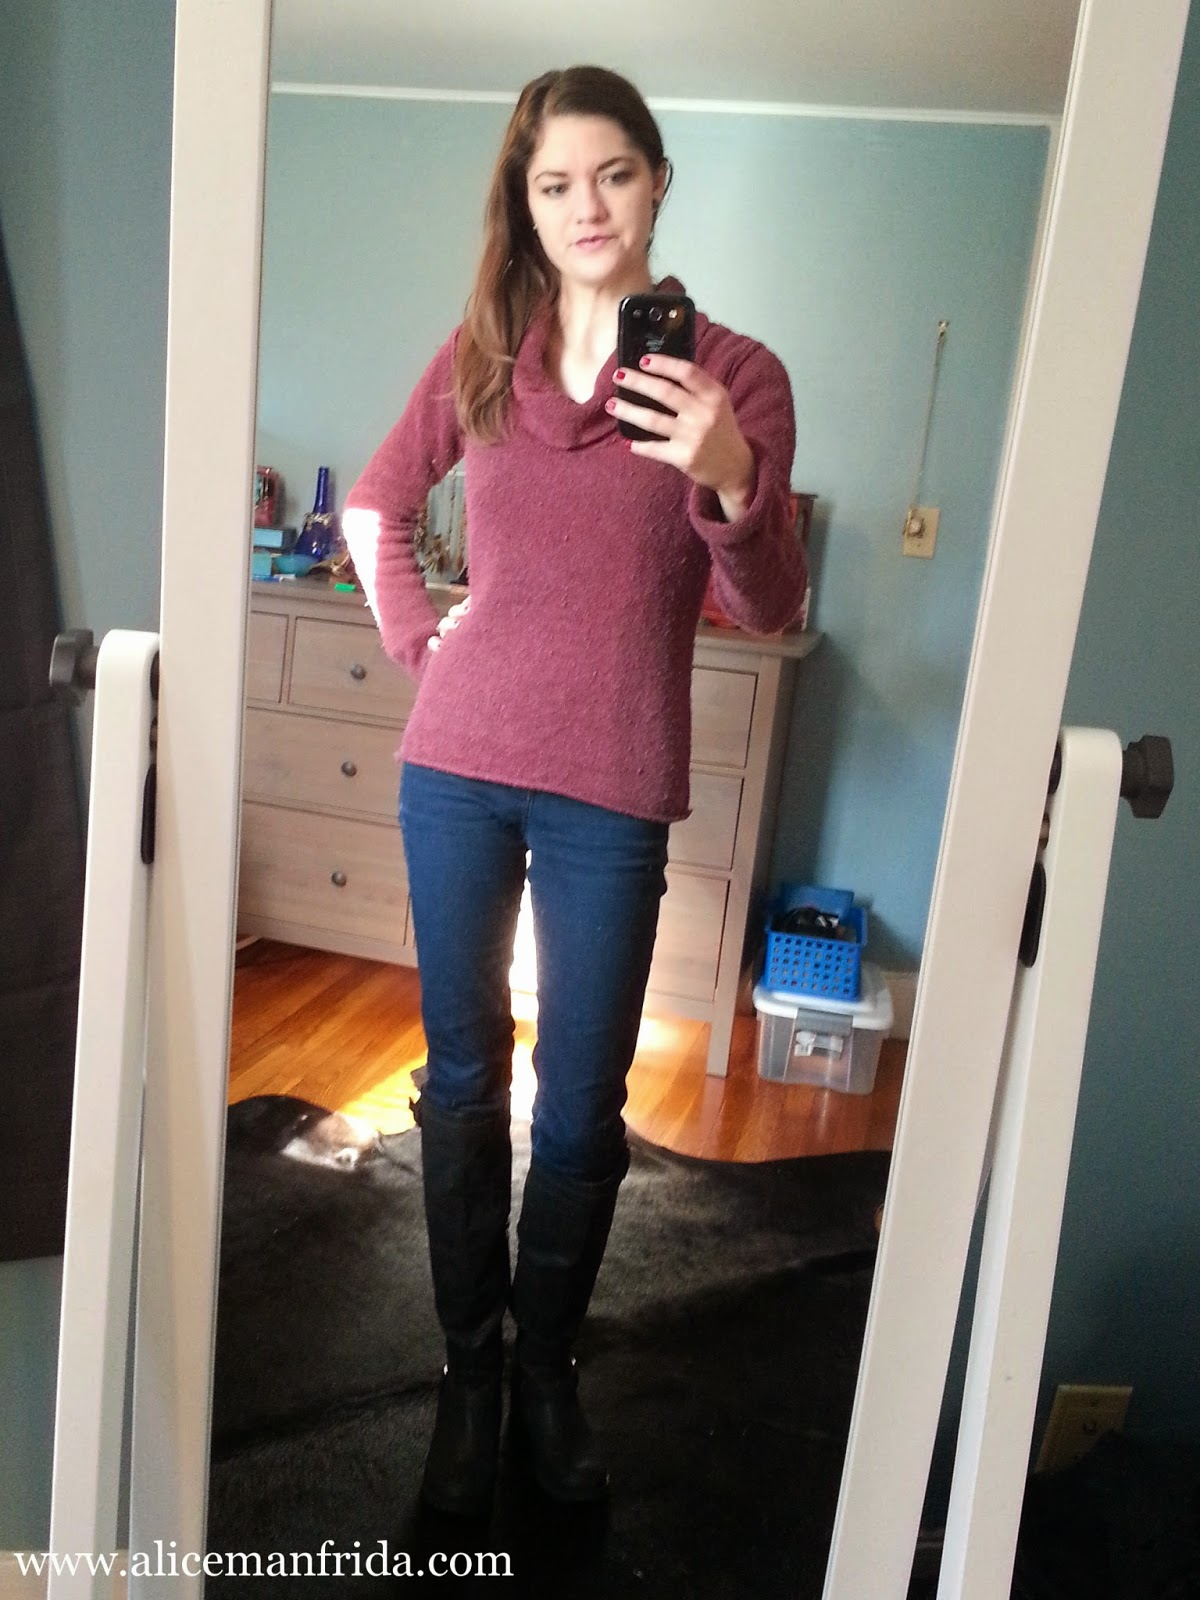 Autumn Style, Fashion, black knee high boots, burgundy sweater, skinny jeans, ootd, ootw, outfit of the day, Alice Manfrida